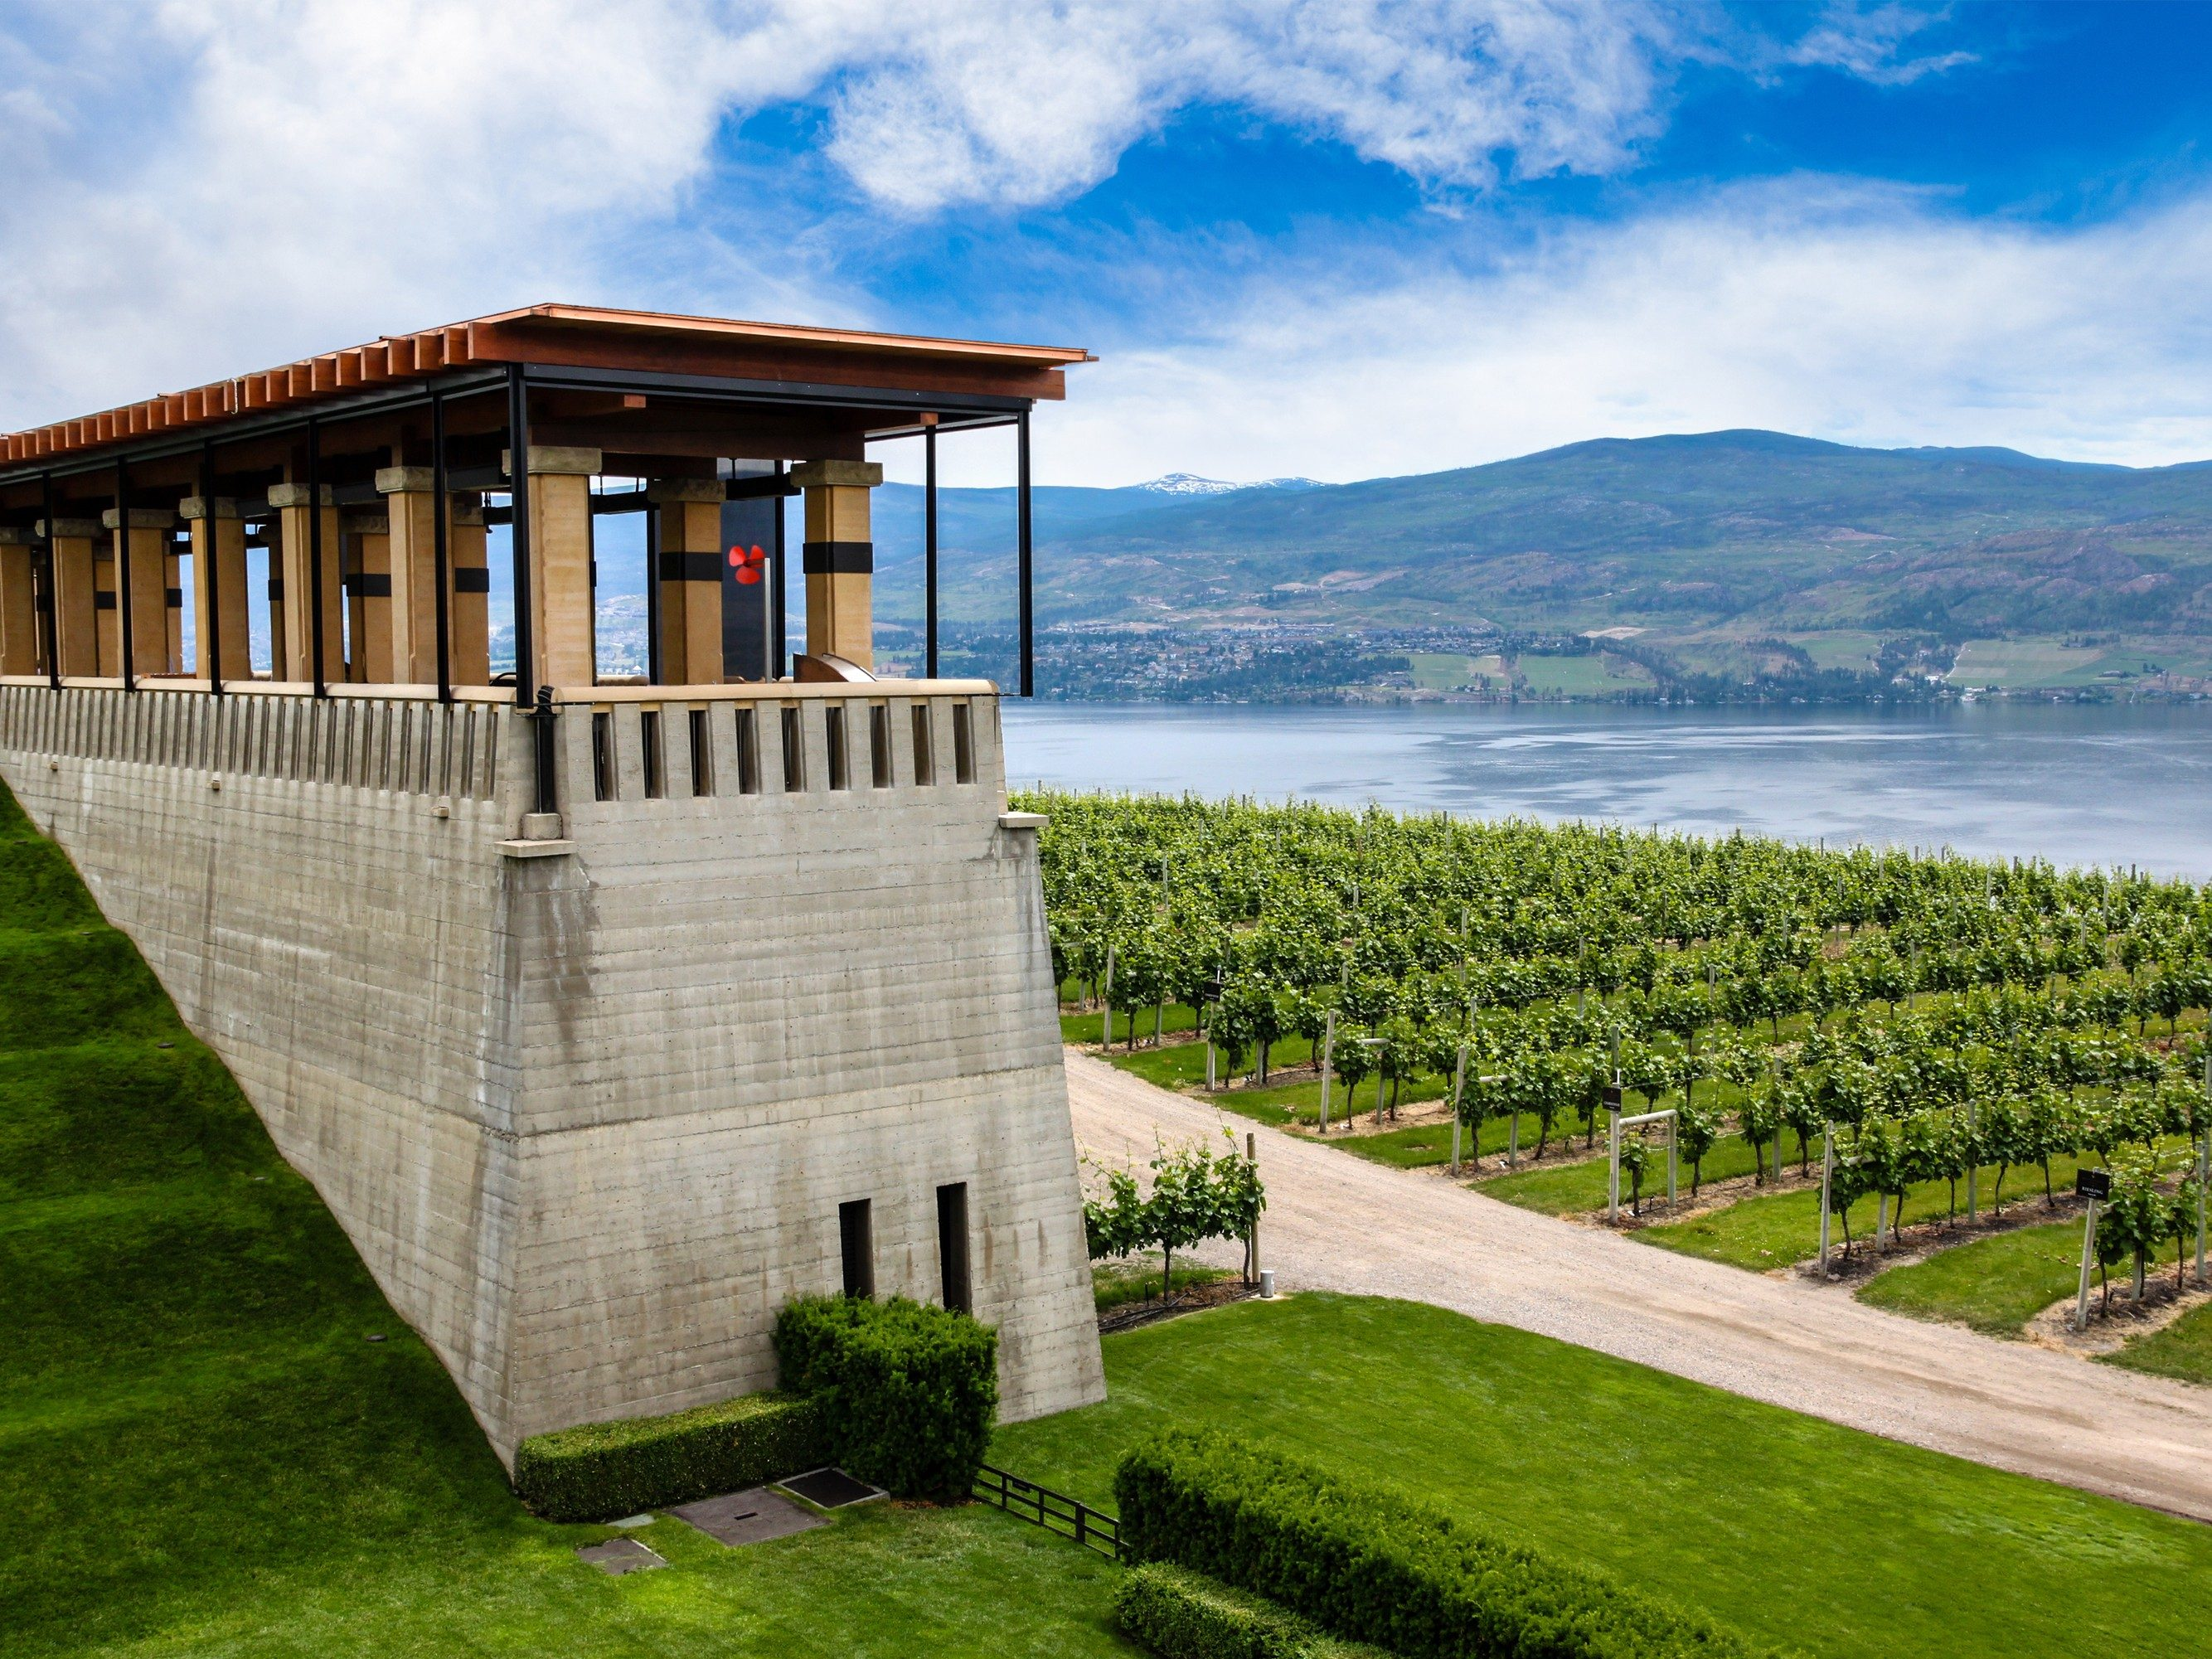 A Foodie Tour Through Kelowna, B.C.